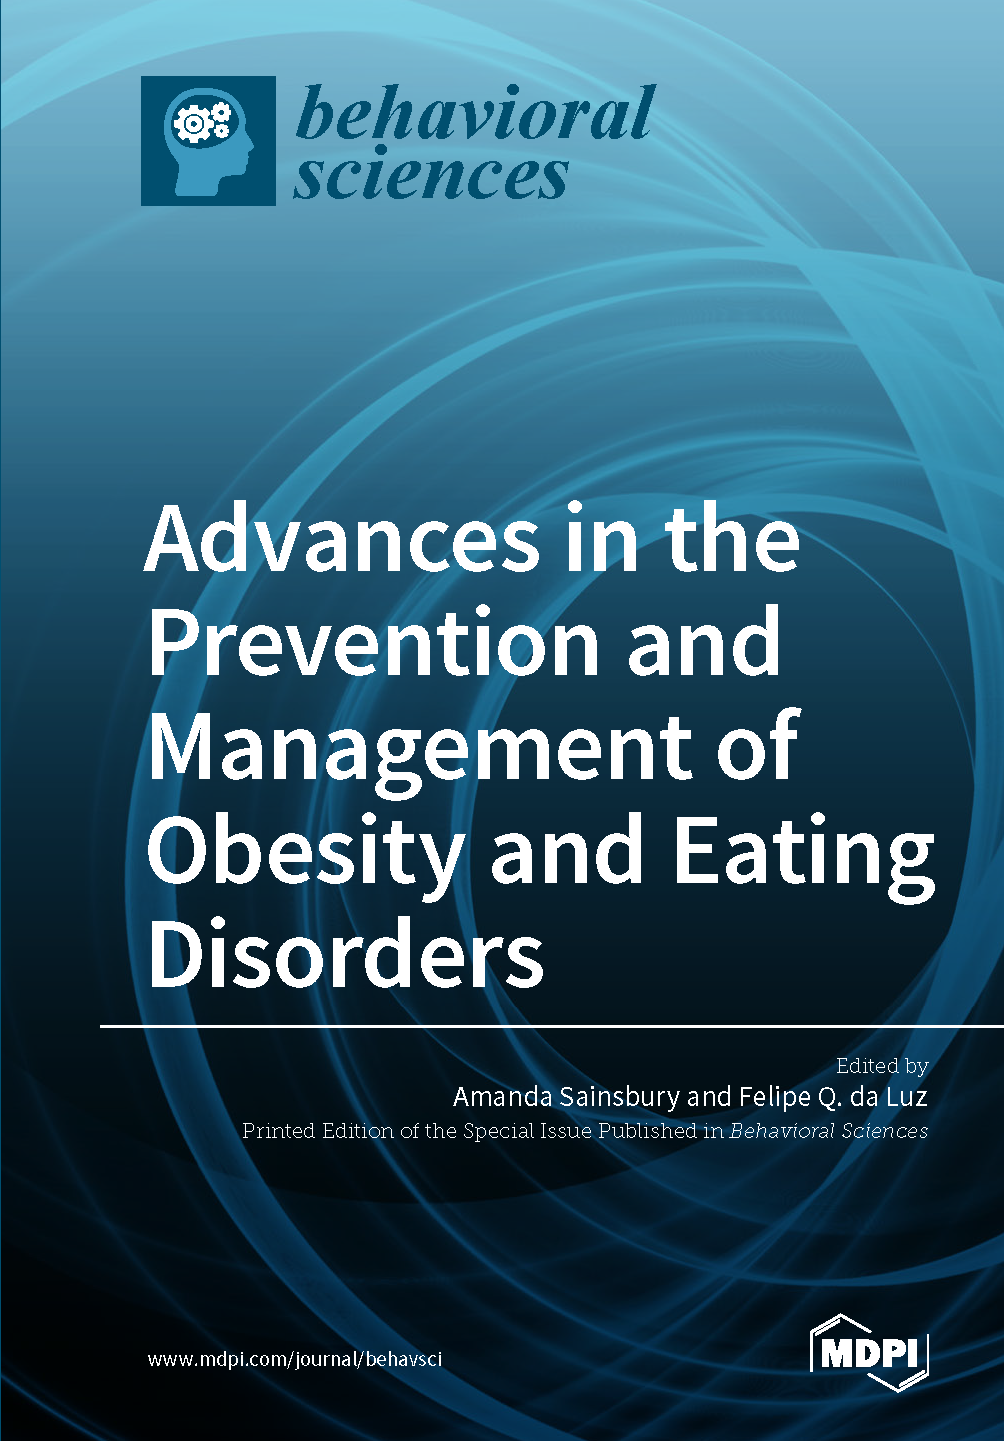 Advances in the Prevention and Management of Obesity and Eating Disorders